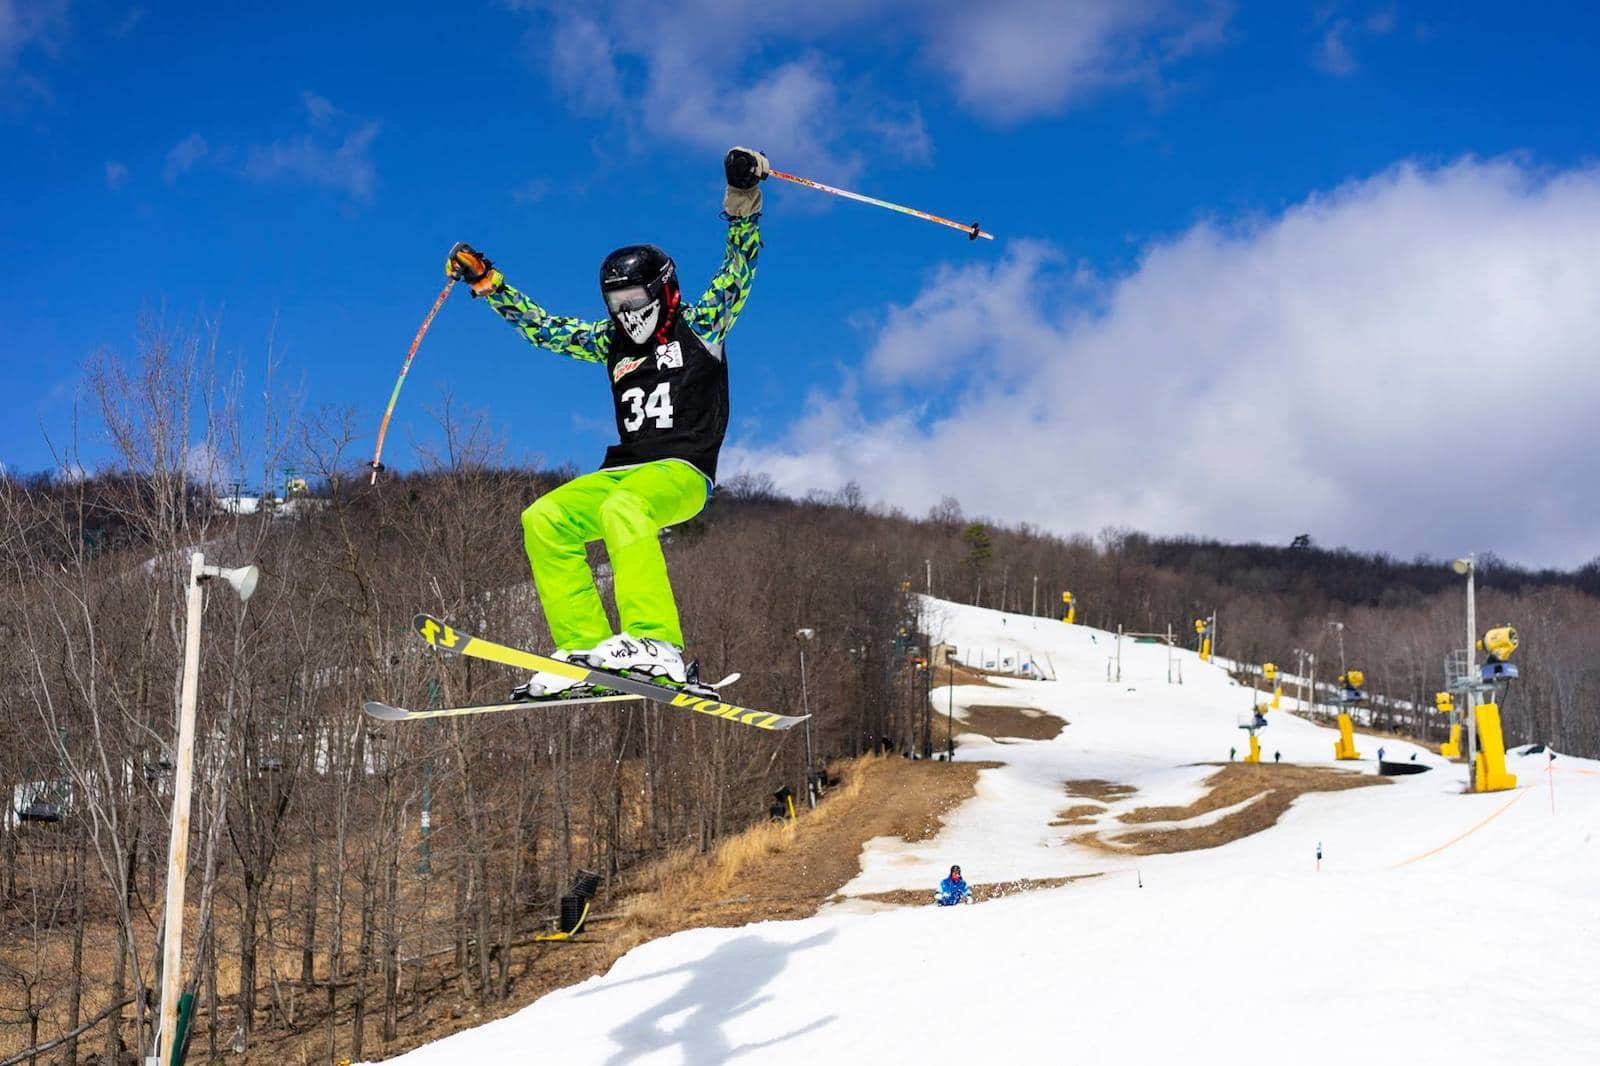 Image of a skier in neon at Whitetail Resort